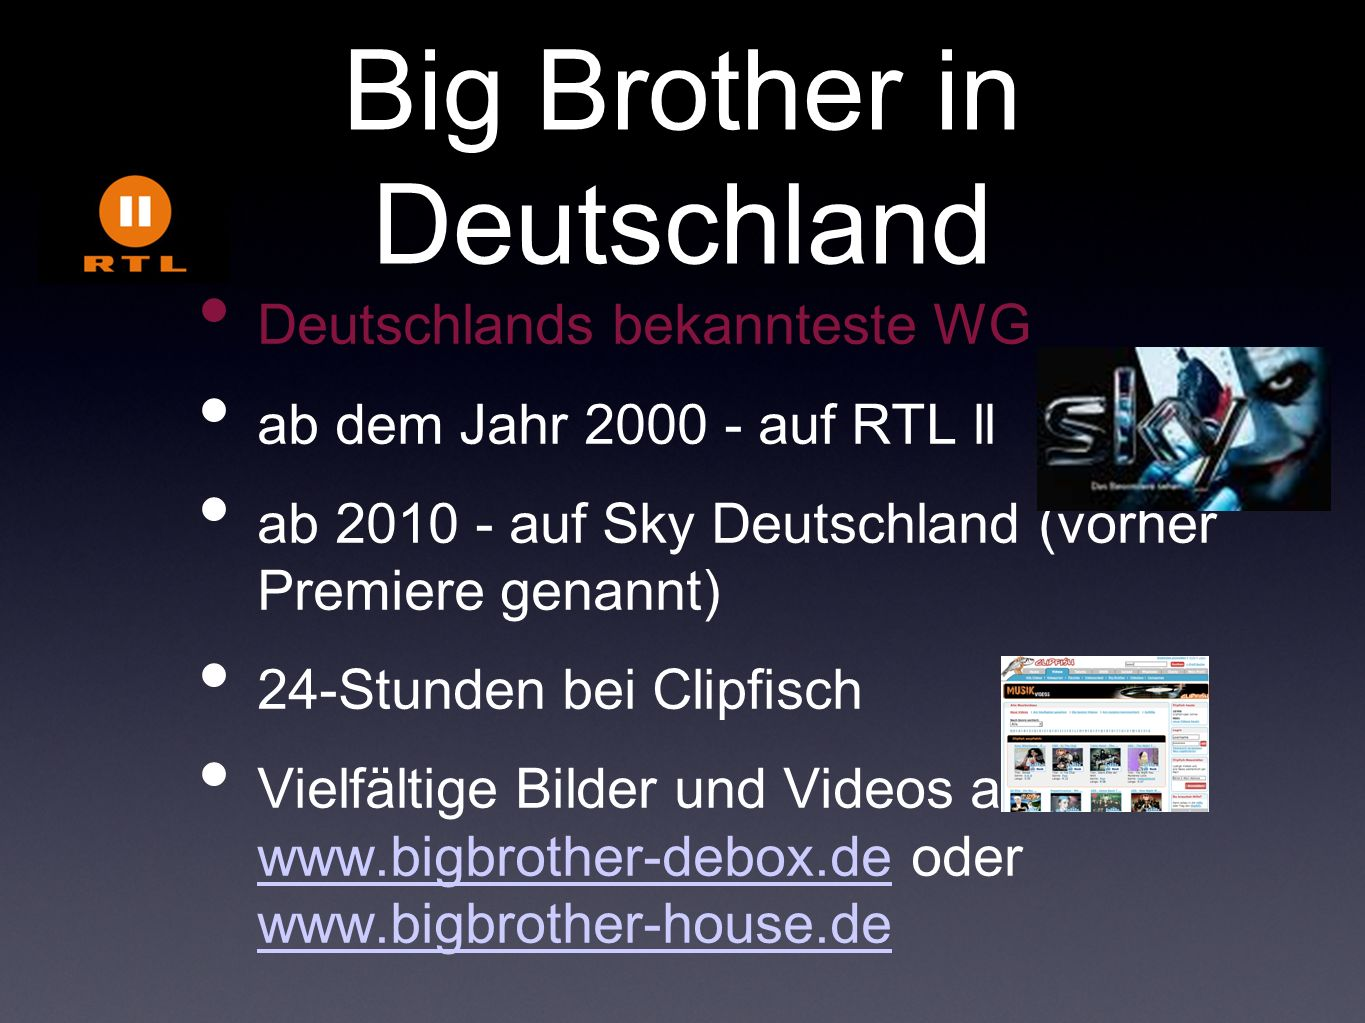 Big Brother in Deutschland